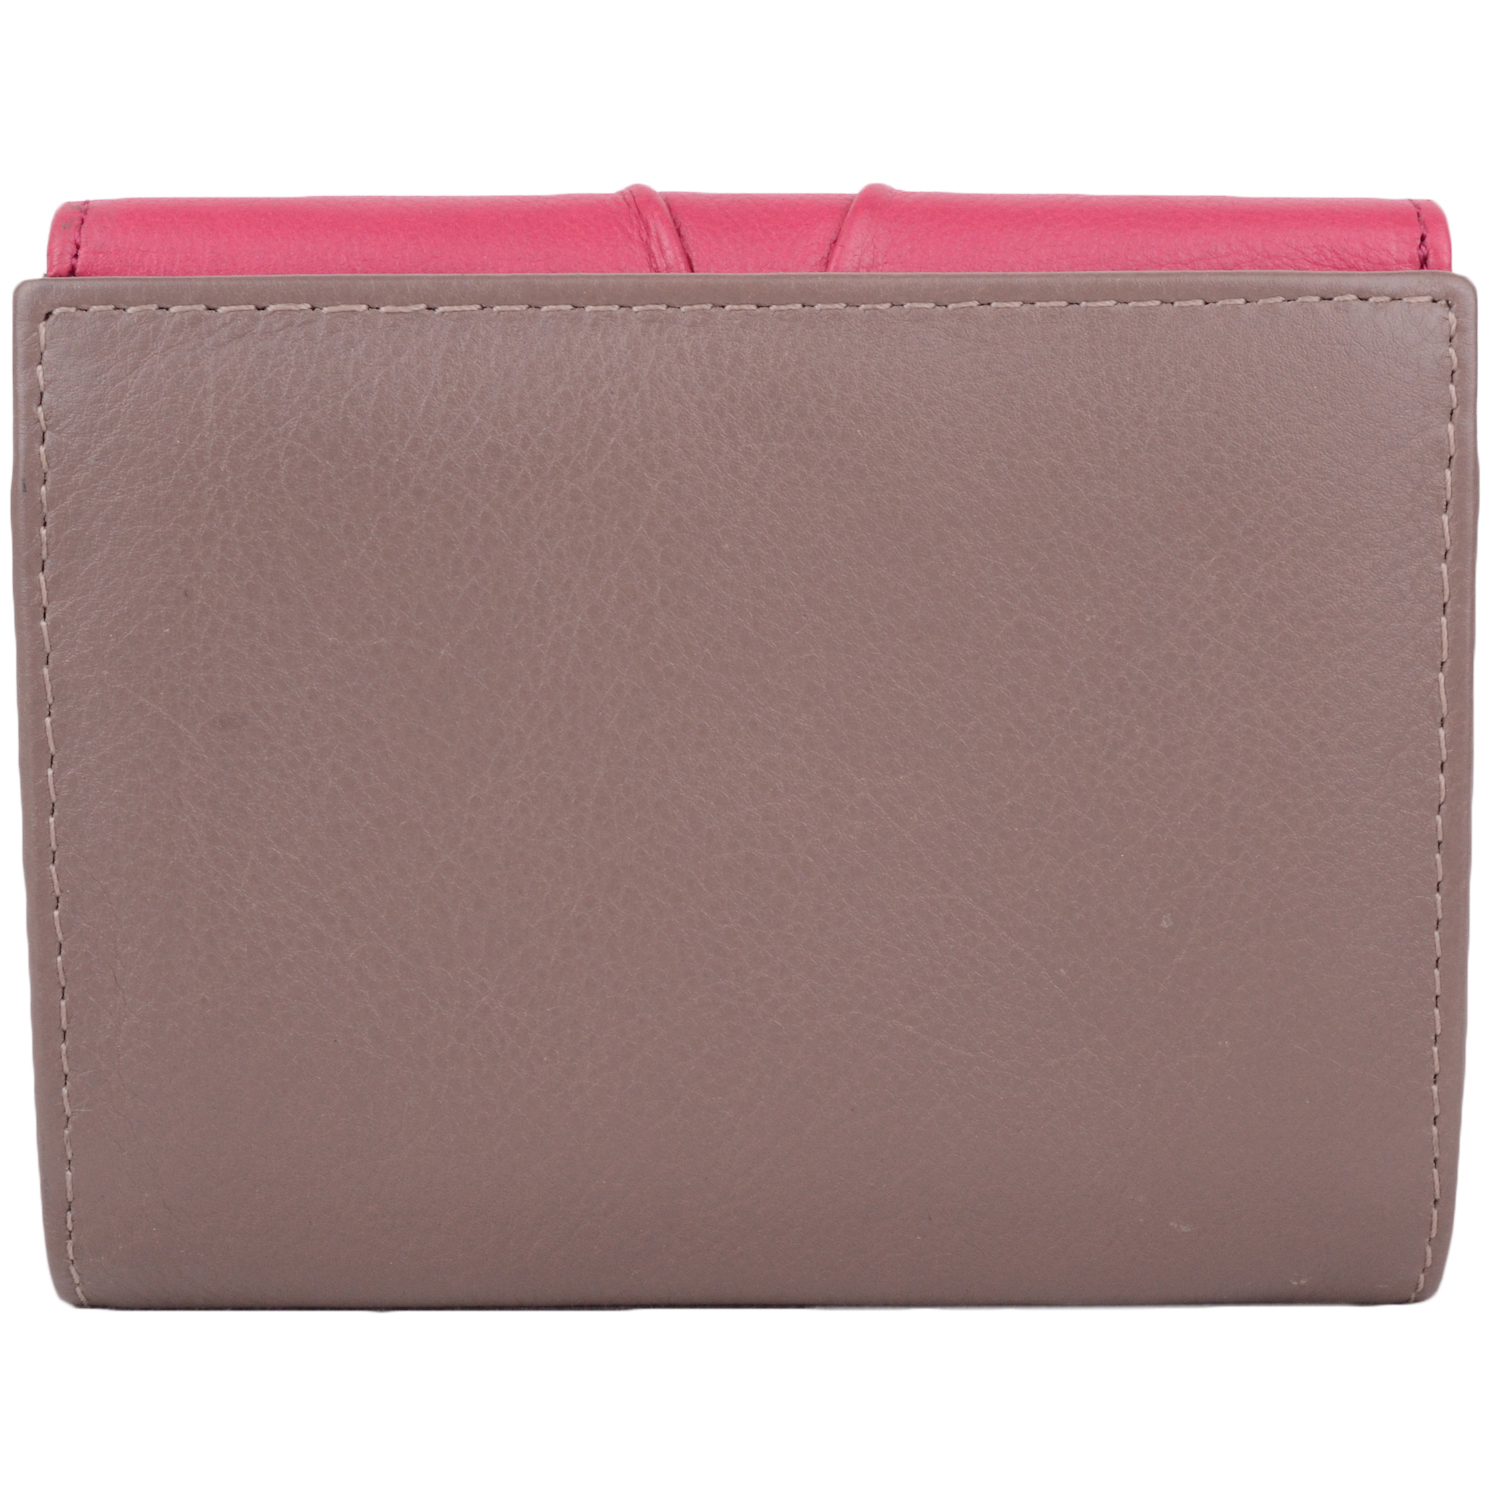 Leather Tri-Fold Purse - Willow - Taupe